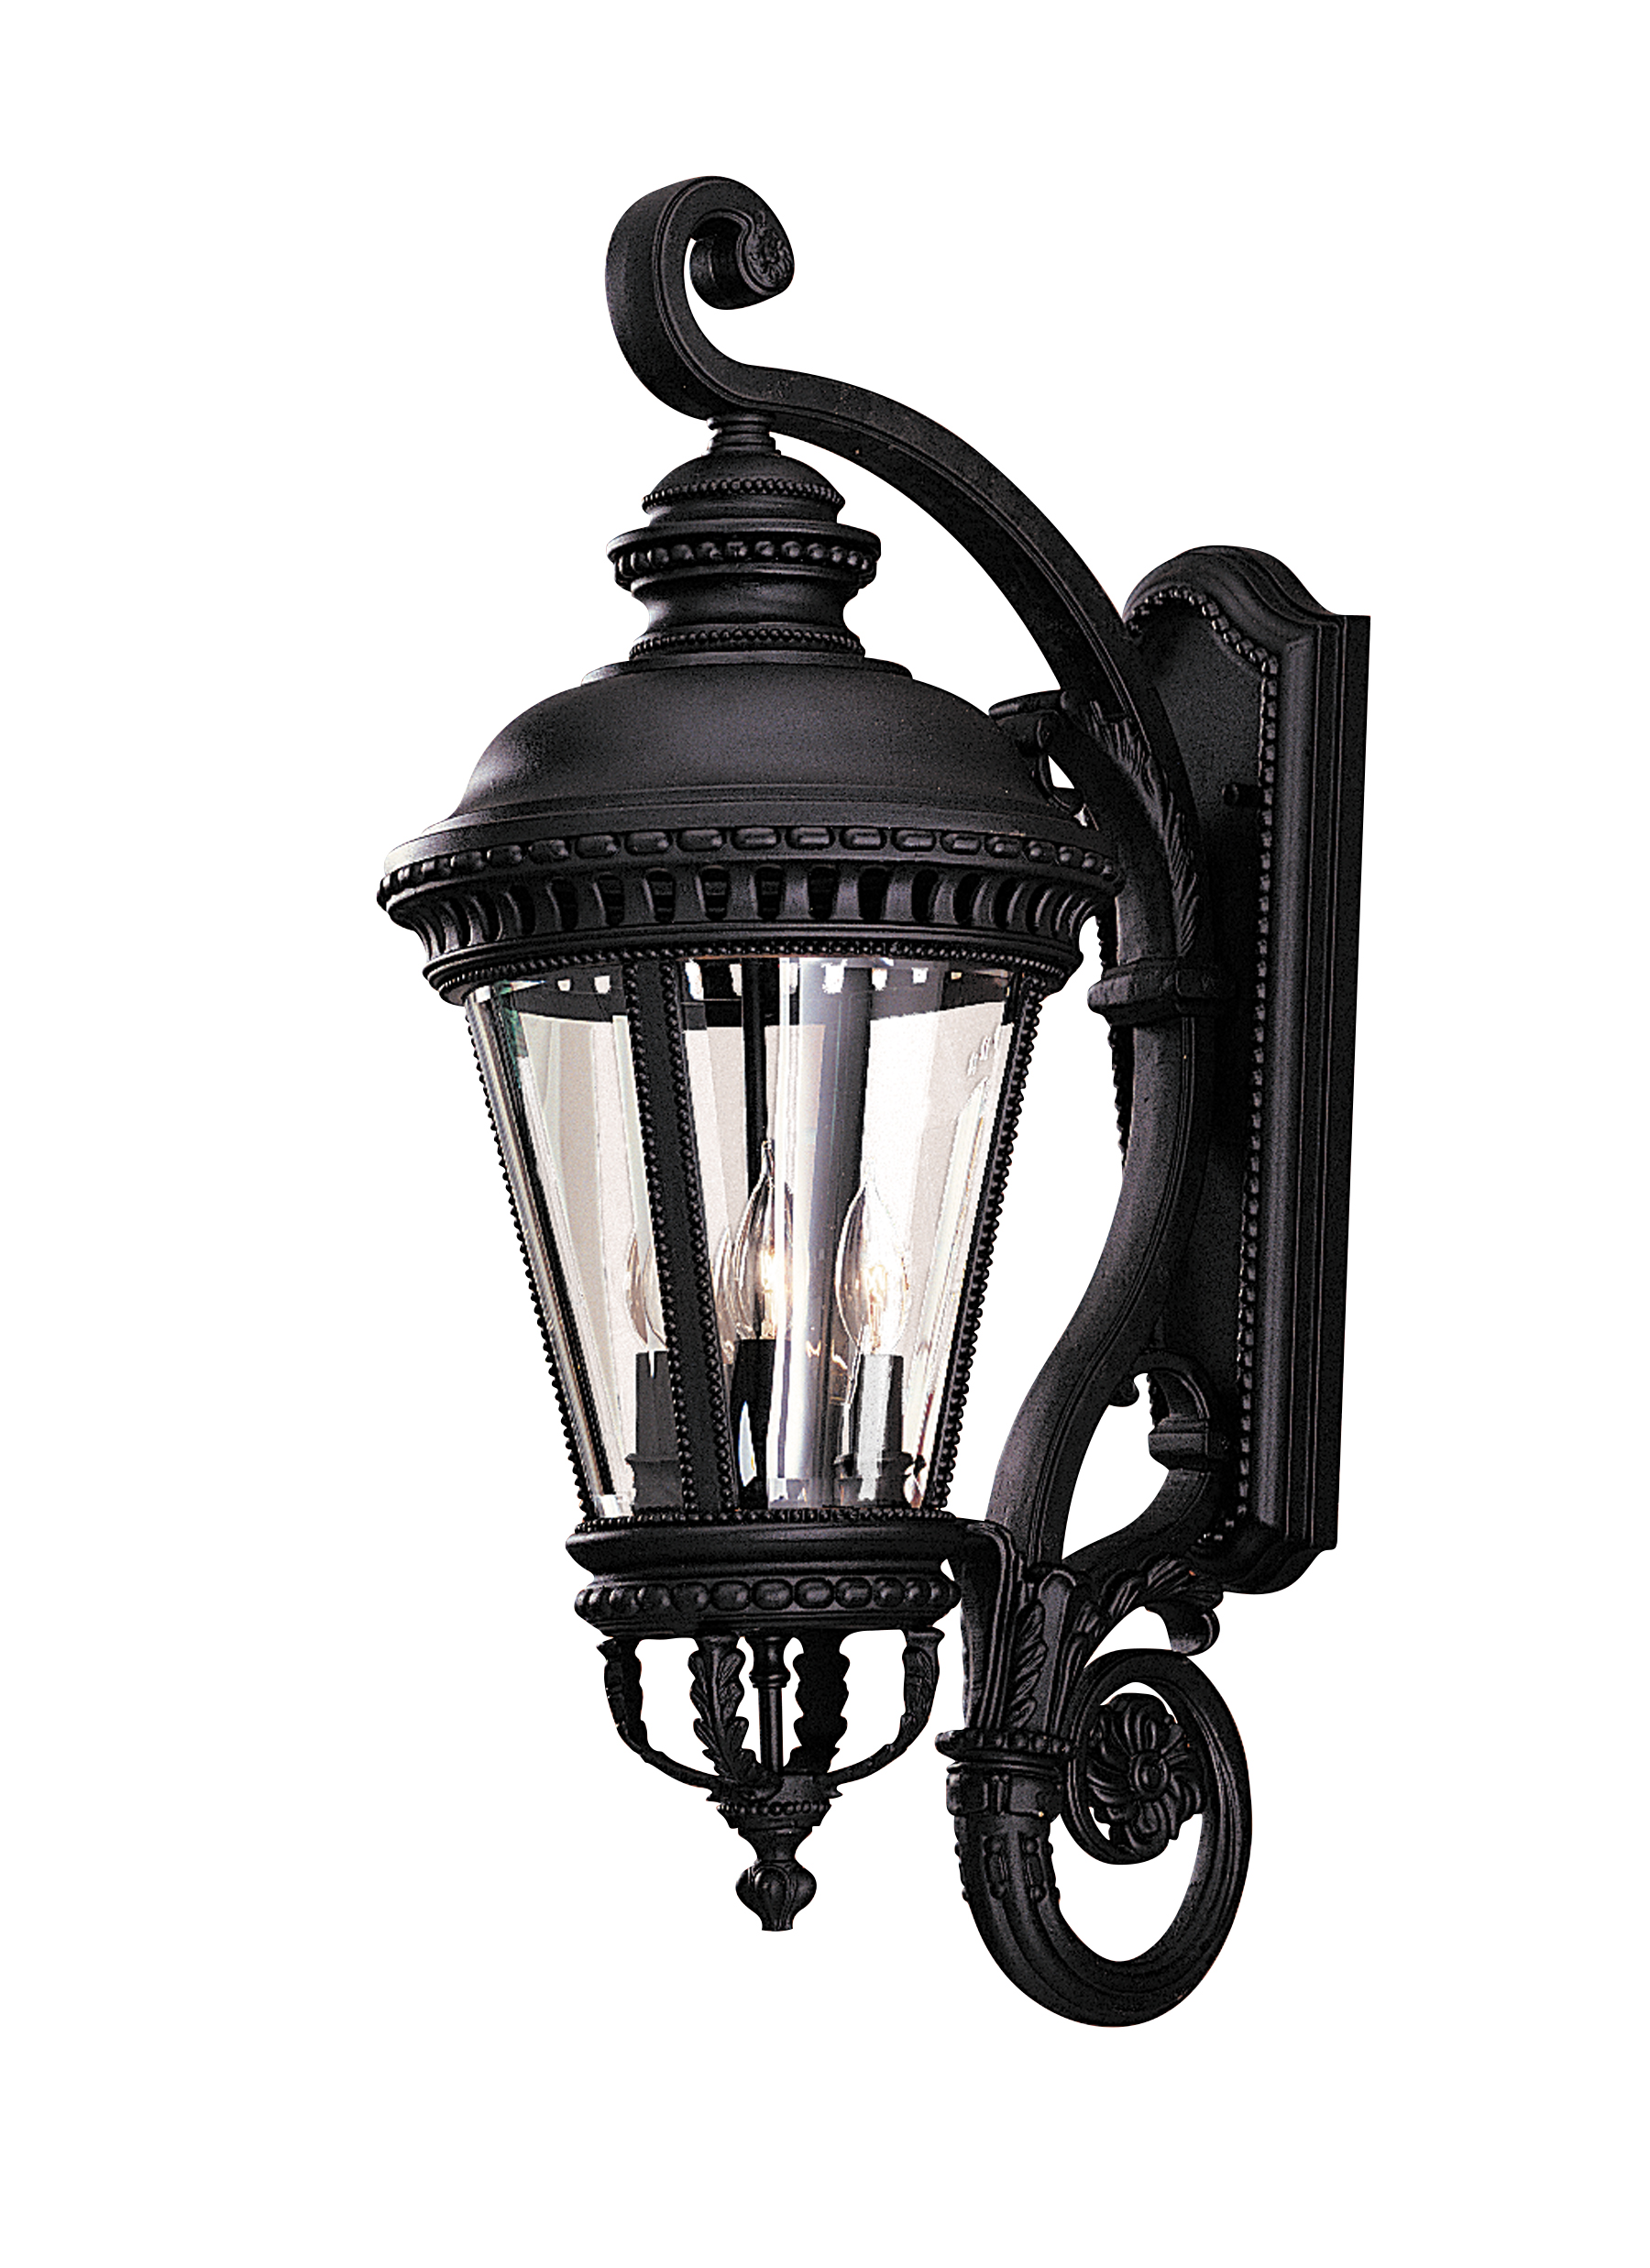 Murray Feiss Outdoor Lighting Ol1904bk4 light wall lanternblack loading zoom workwithnaturefo